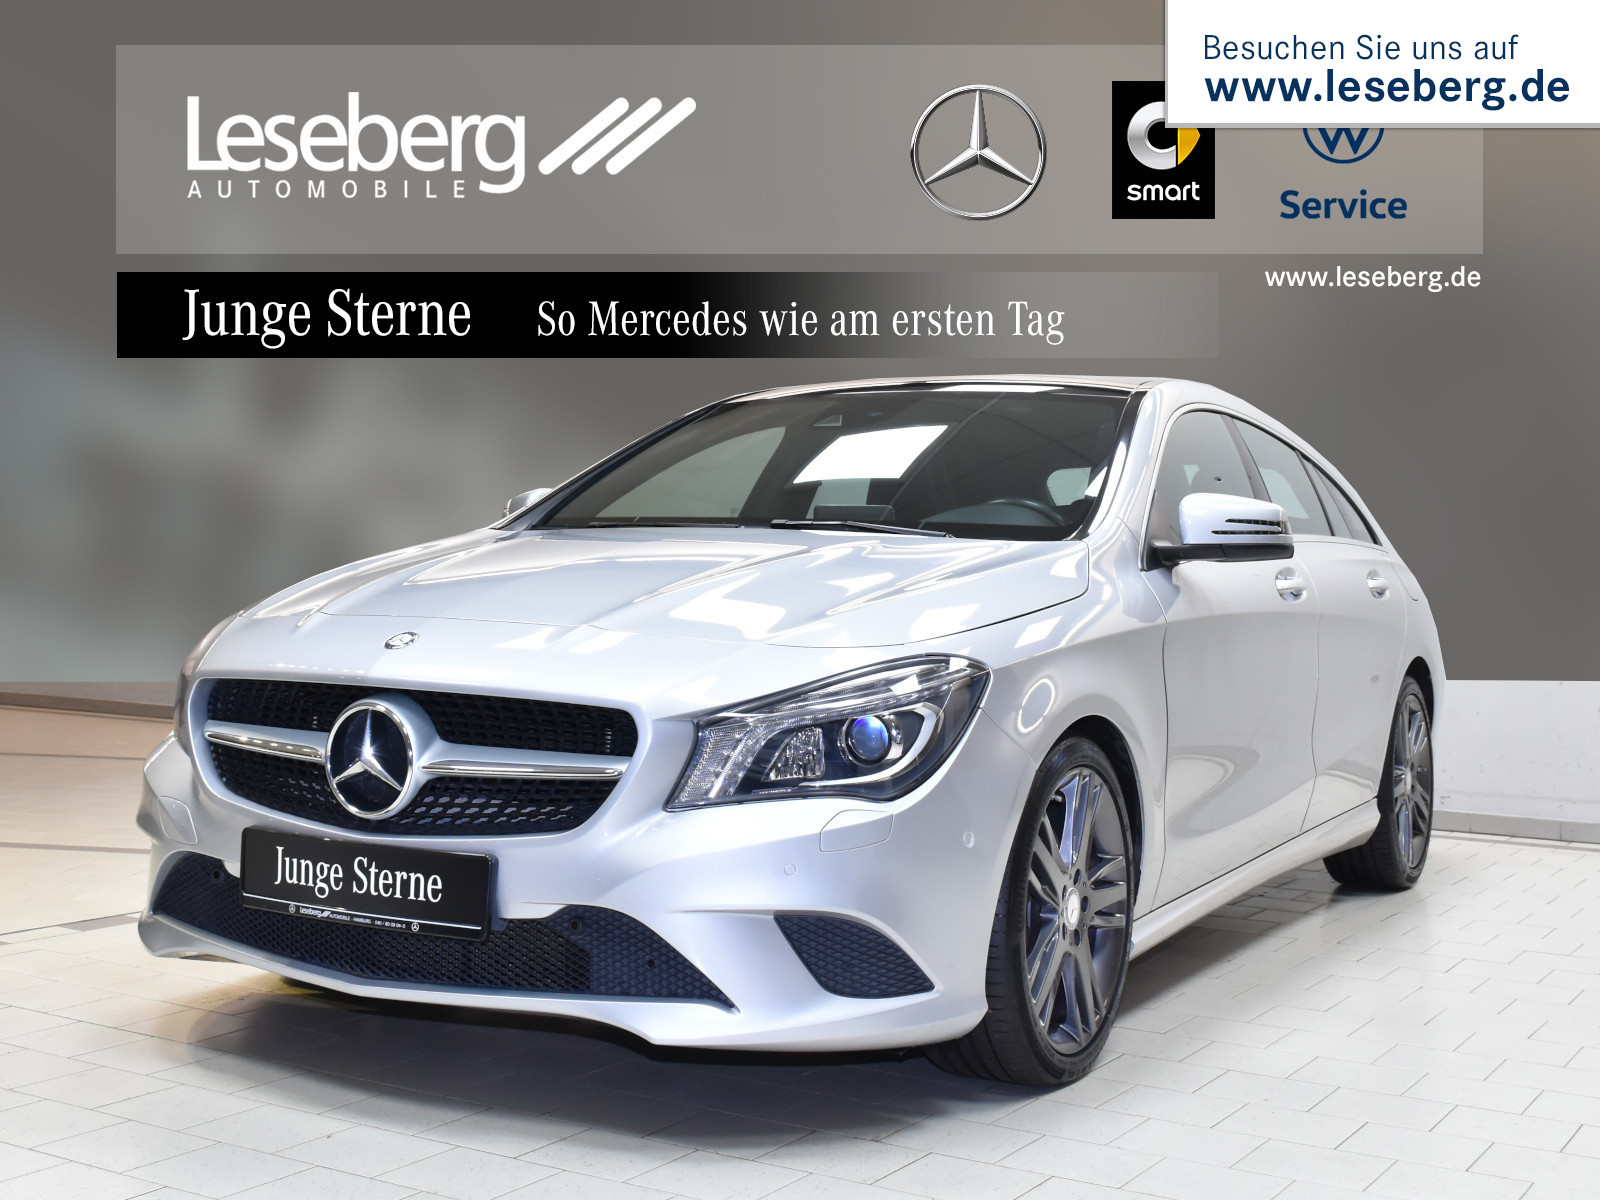 Mercedes-Benz CLA 200 Shooting Brake Urban/7G/Pano/LED/Navi, Jahr 2015, Benzin